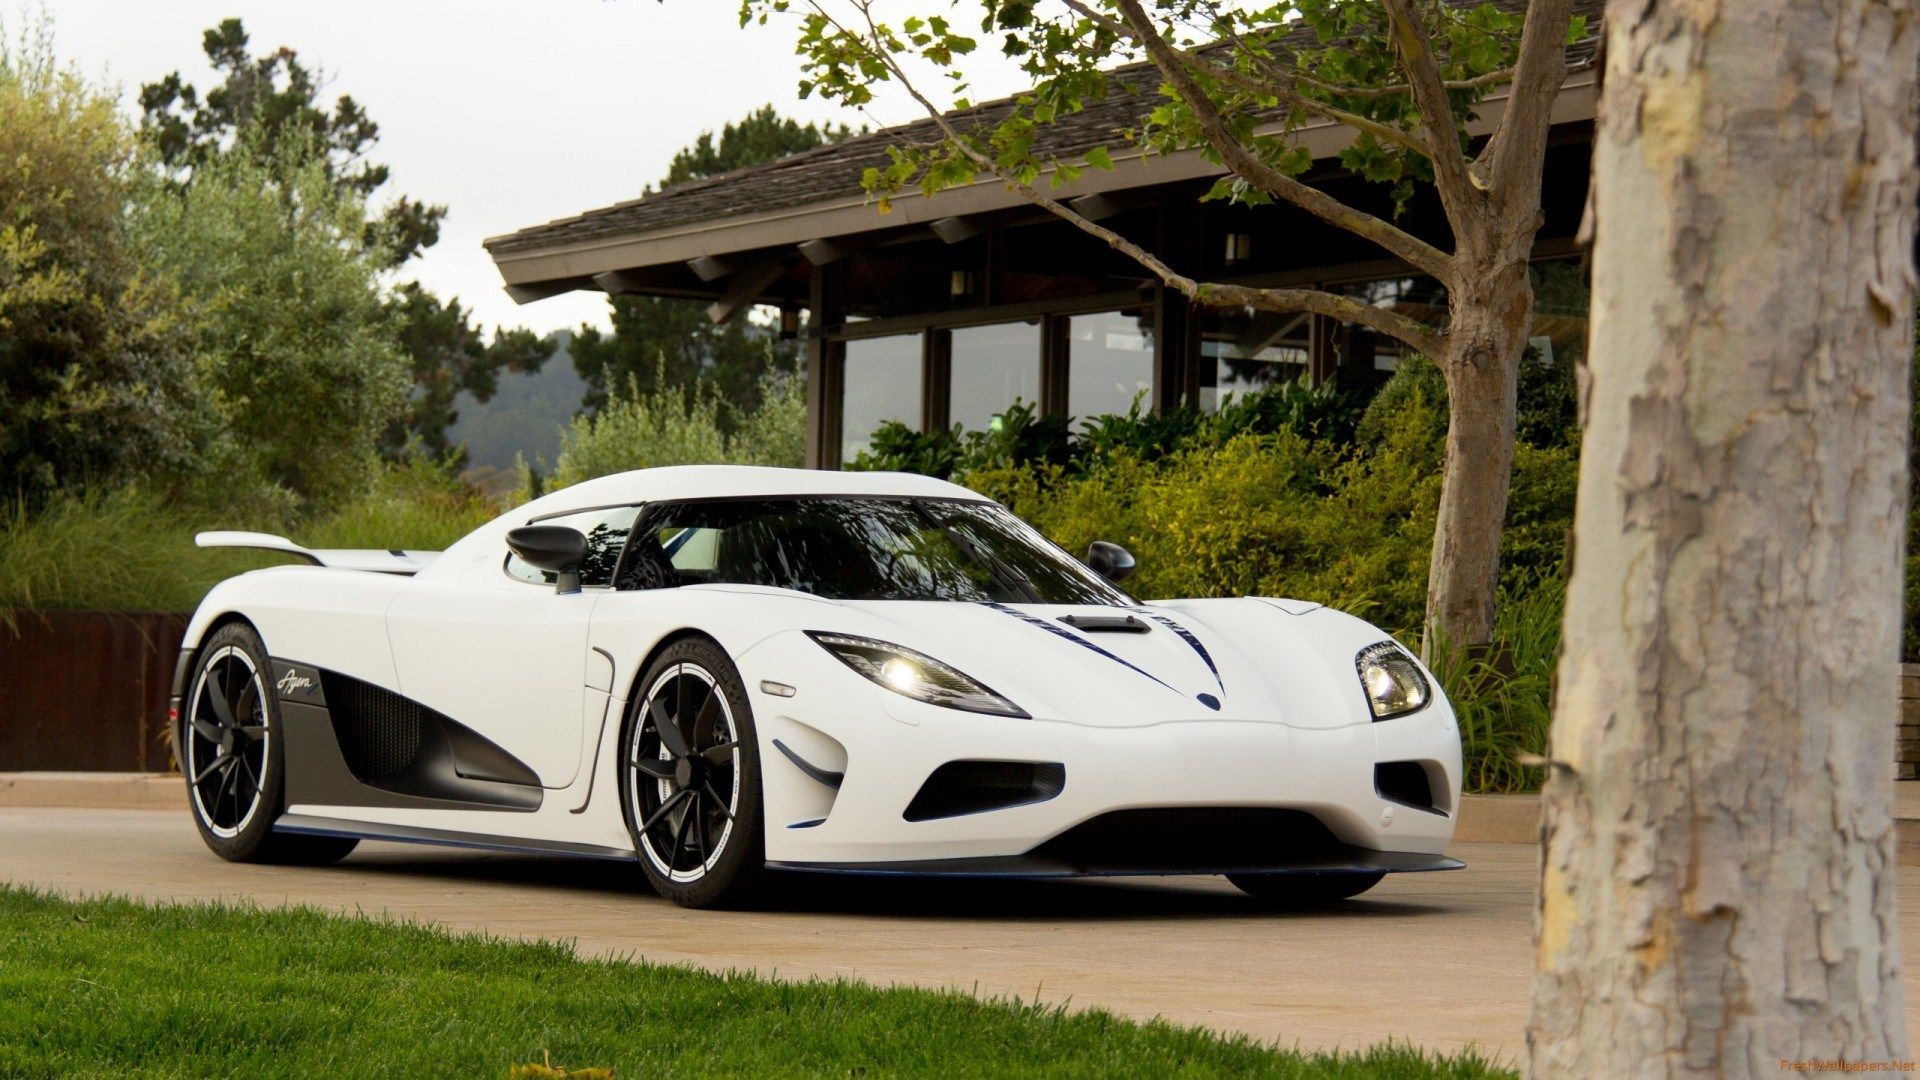 Free Download Koenigsegg Agera R Background Bzwallpapersxyz